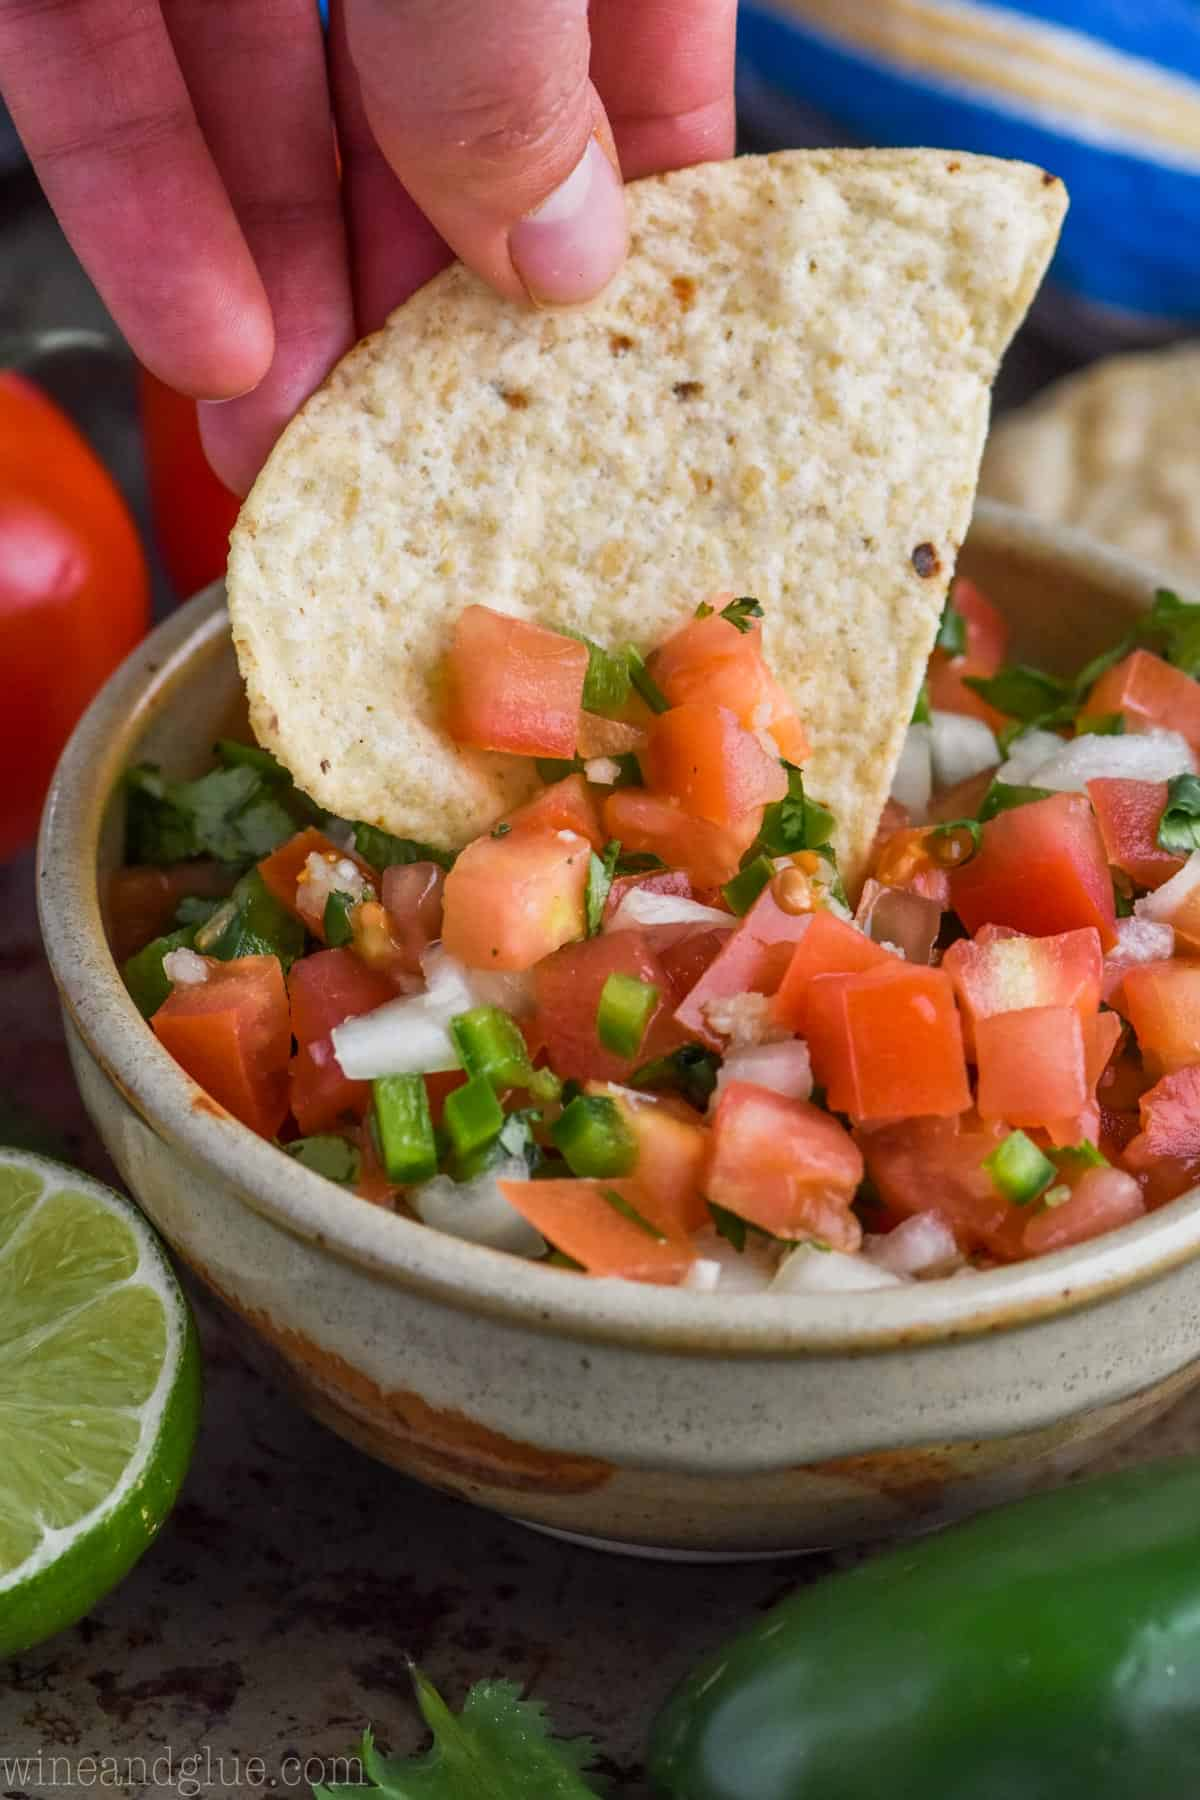 Gallo By Thian Different Ways To Wear A Scarf: The Best Pico De Gallo Recipe